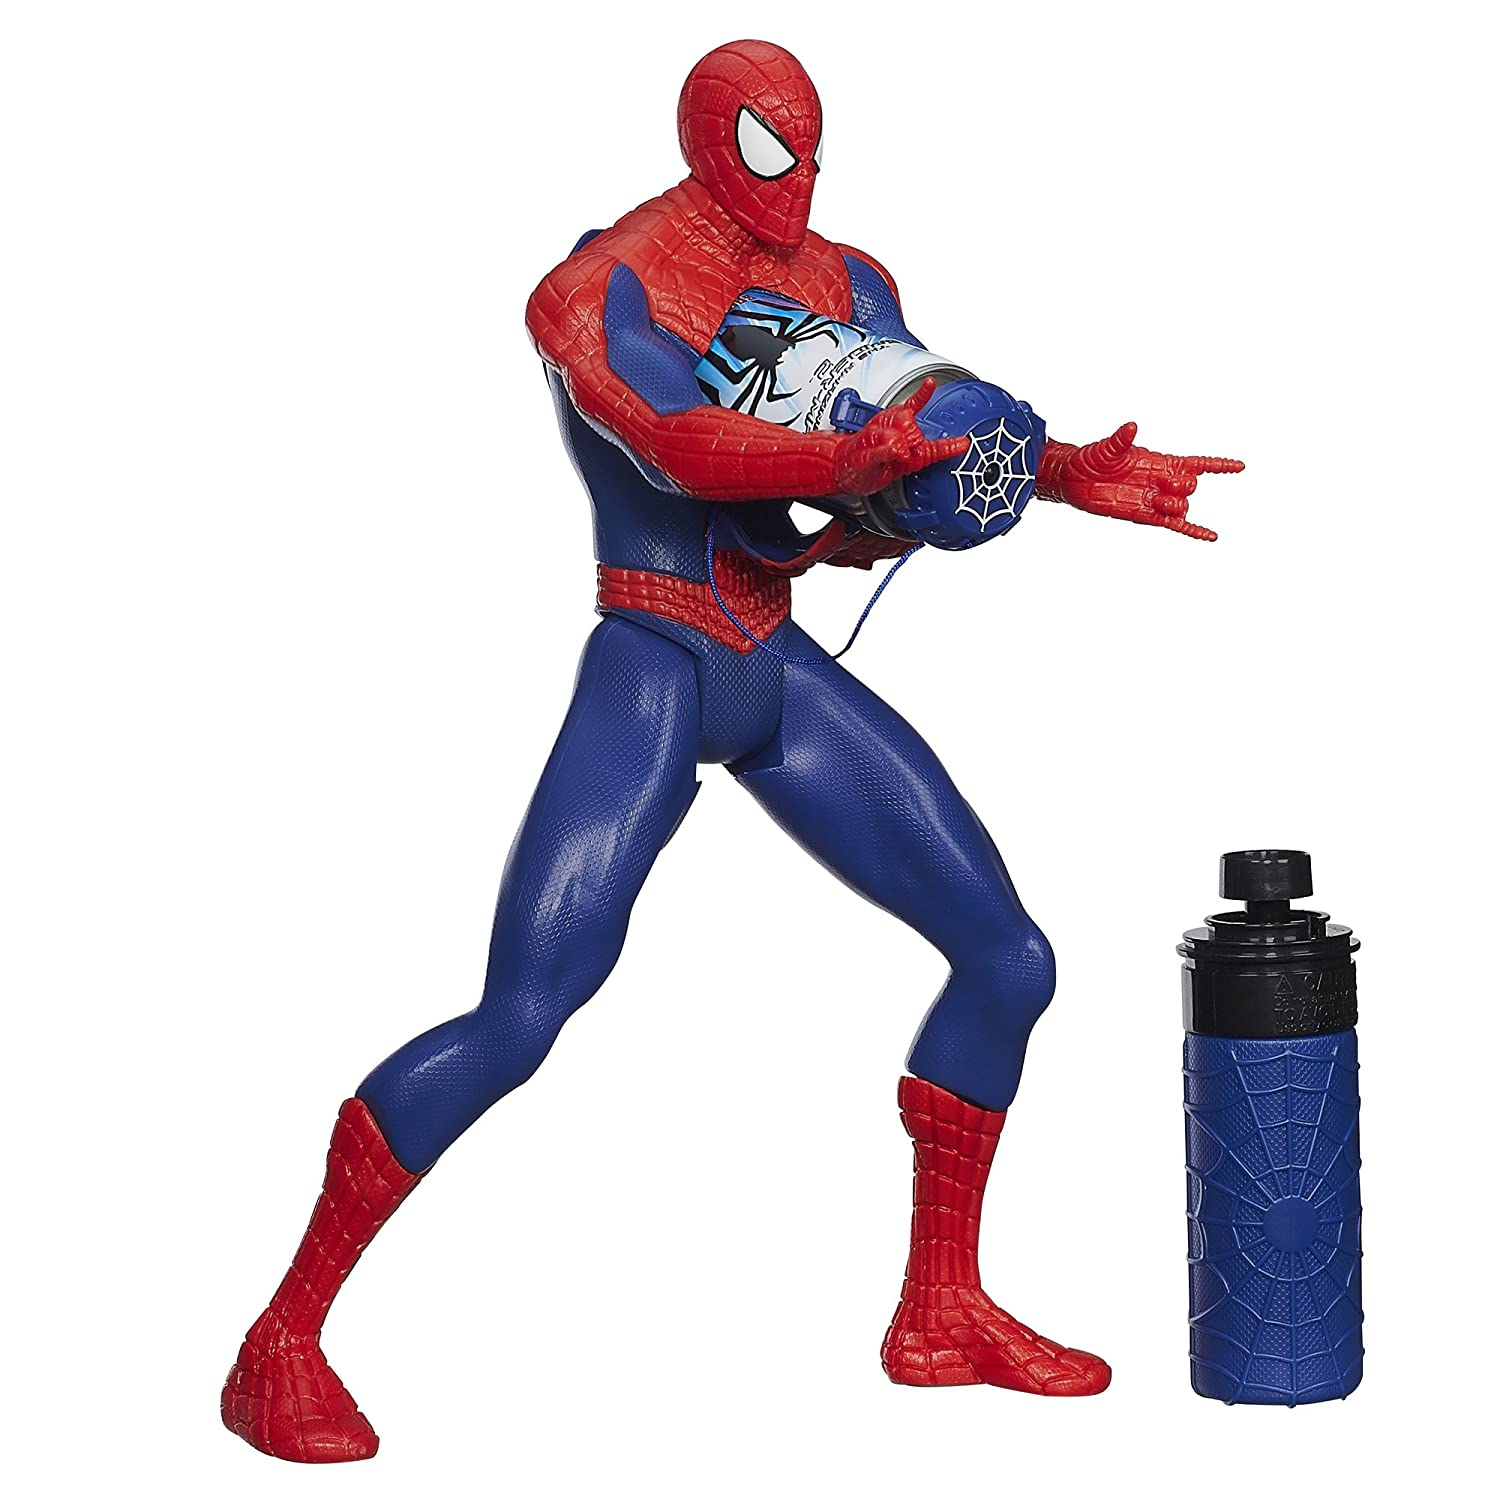 Spider-Man Marvel The Amazing Spider-Man 2 Web-Slinging Spider-Man Figure